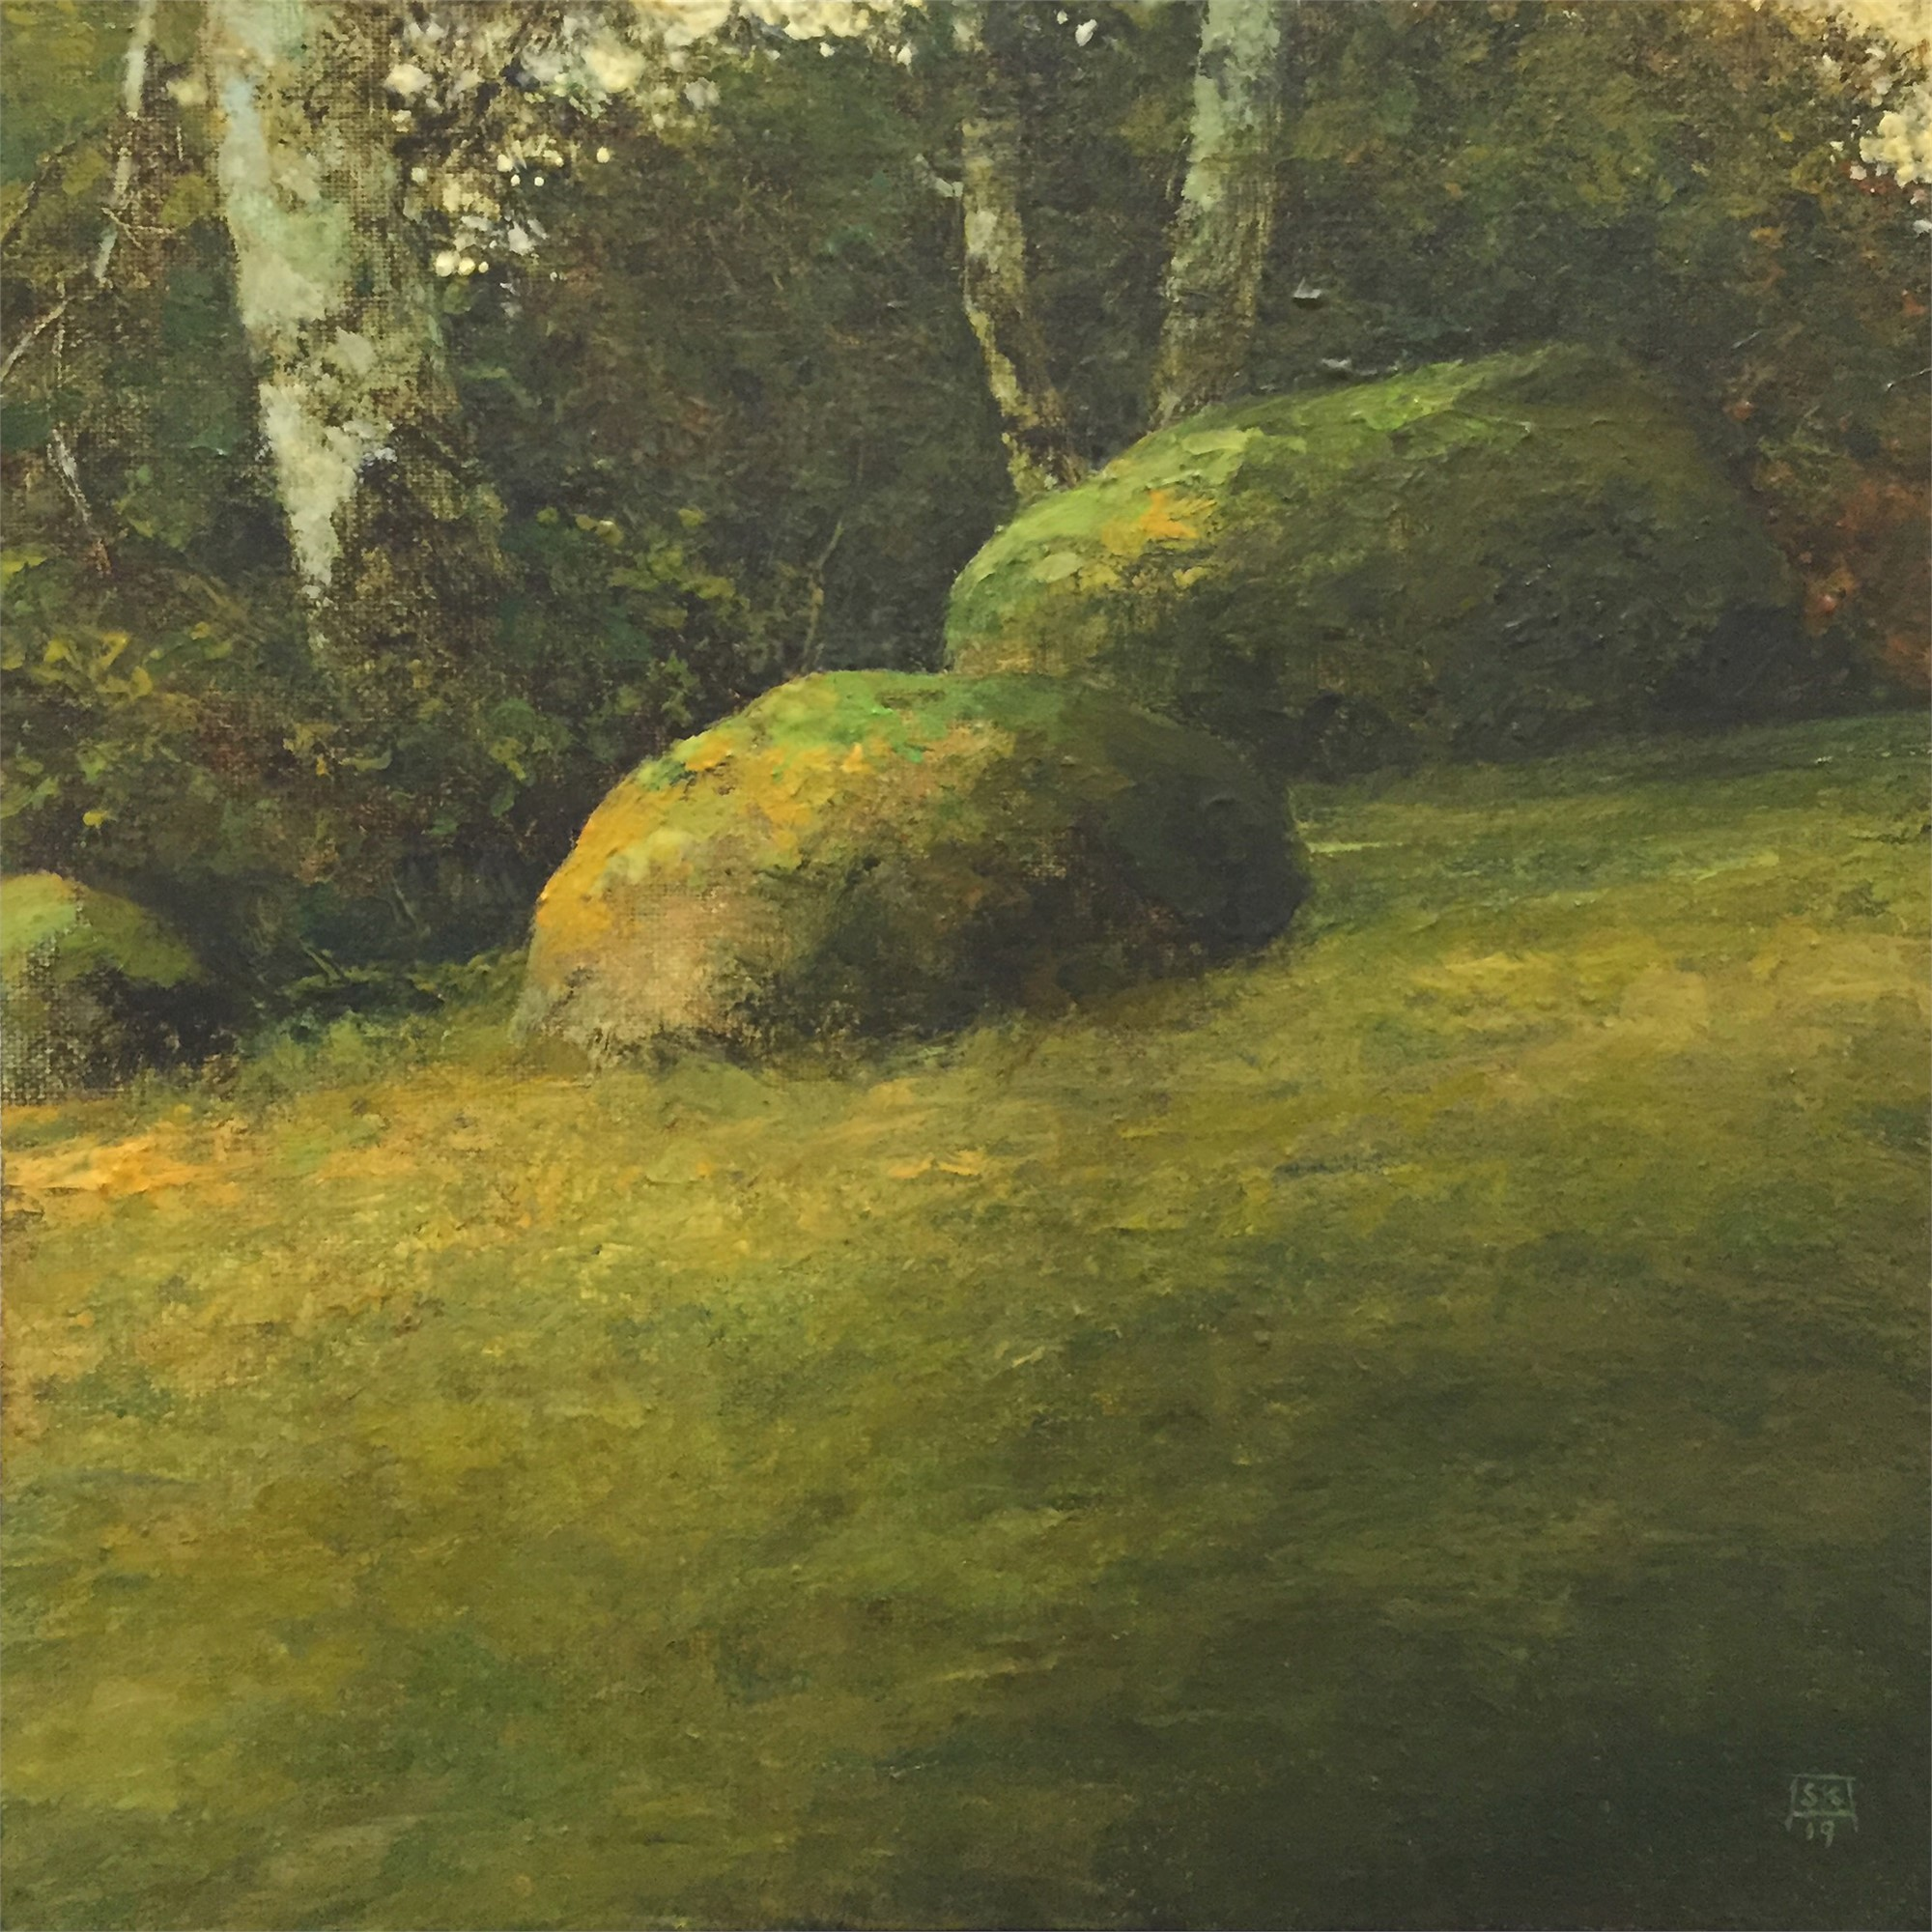 Field and Stone Study 6 by Shawn Krueger